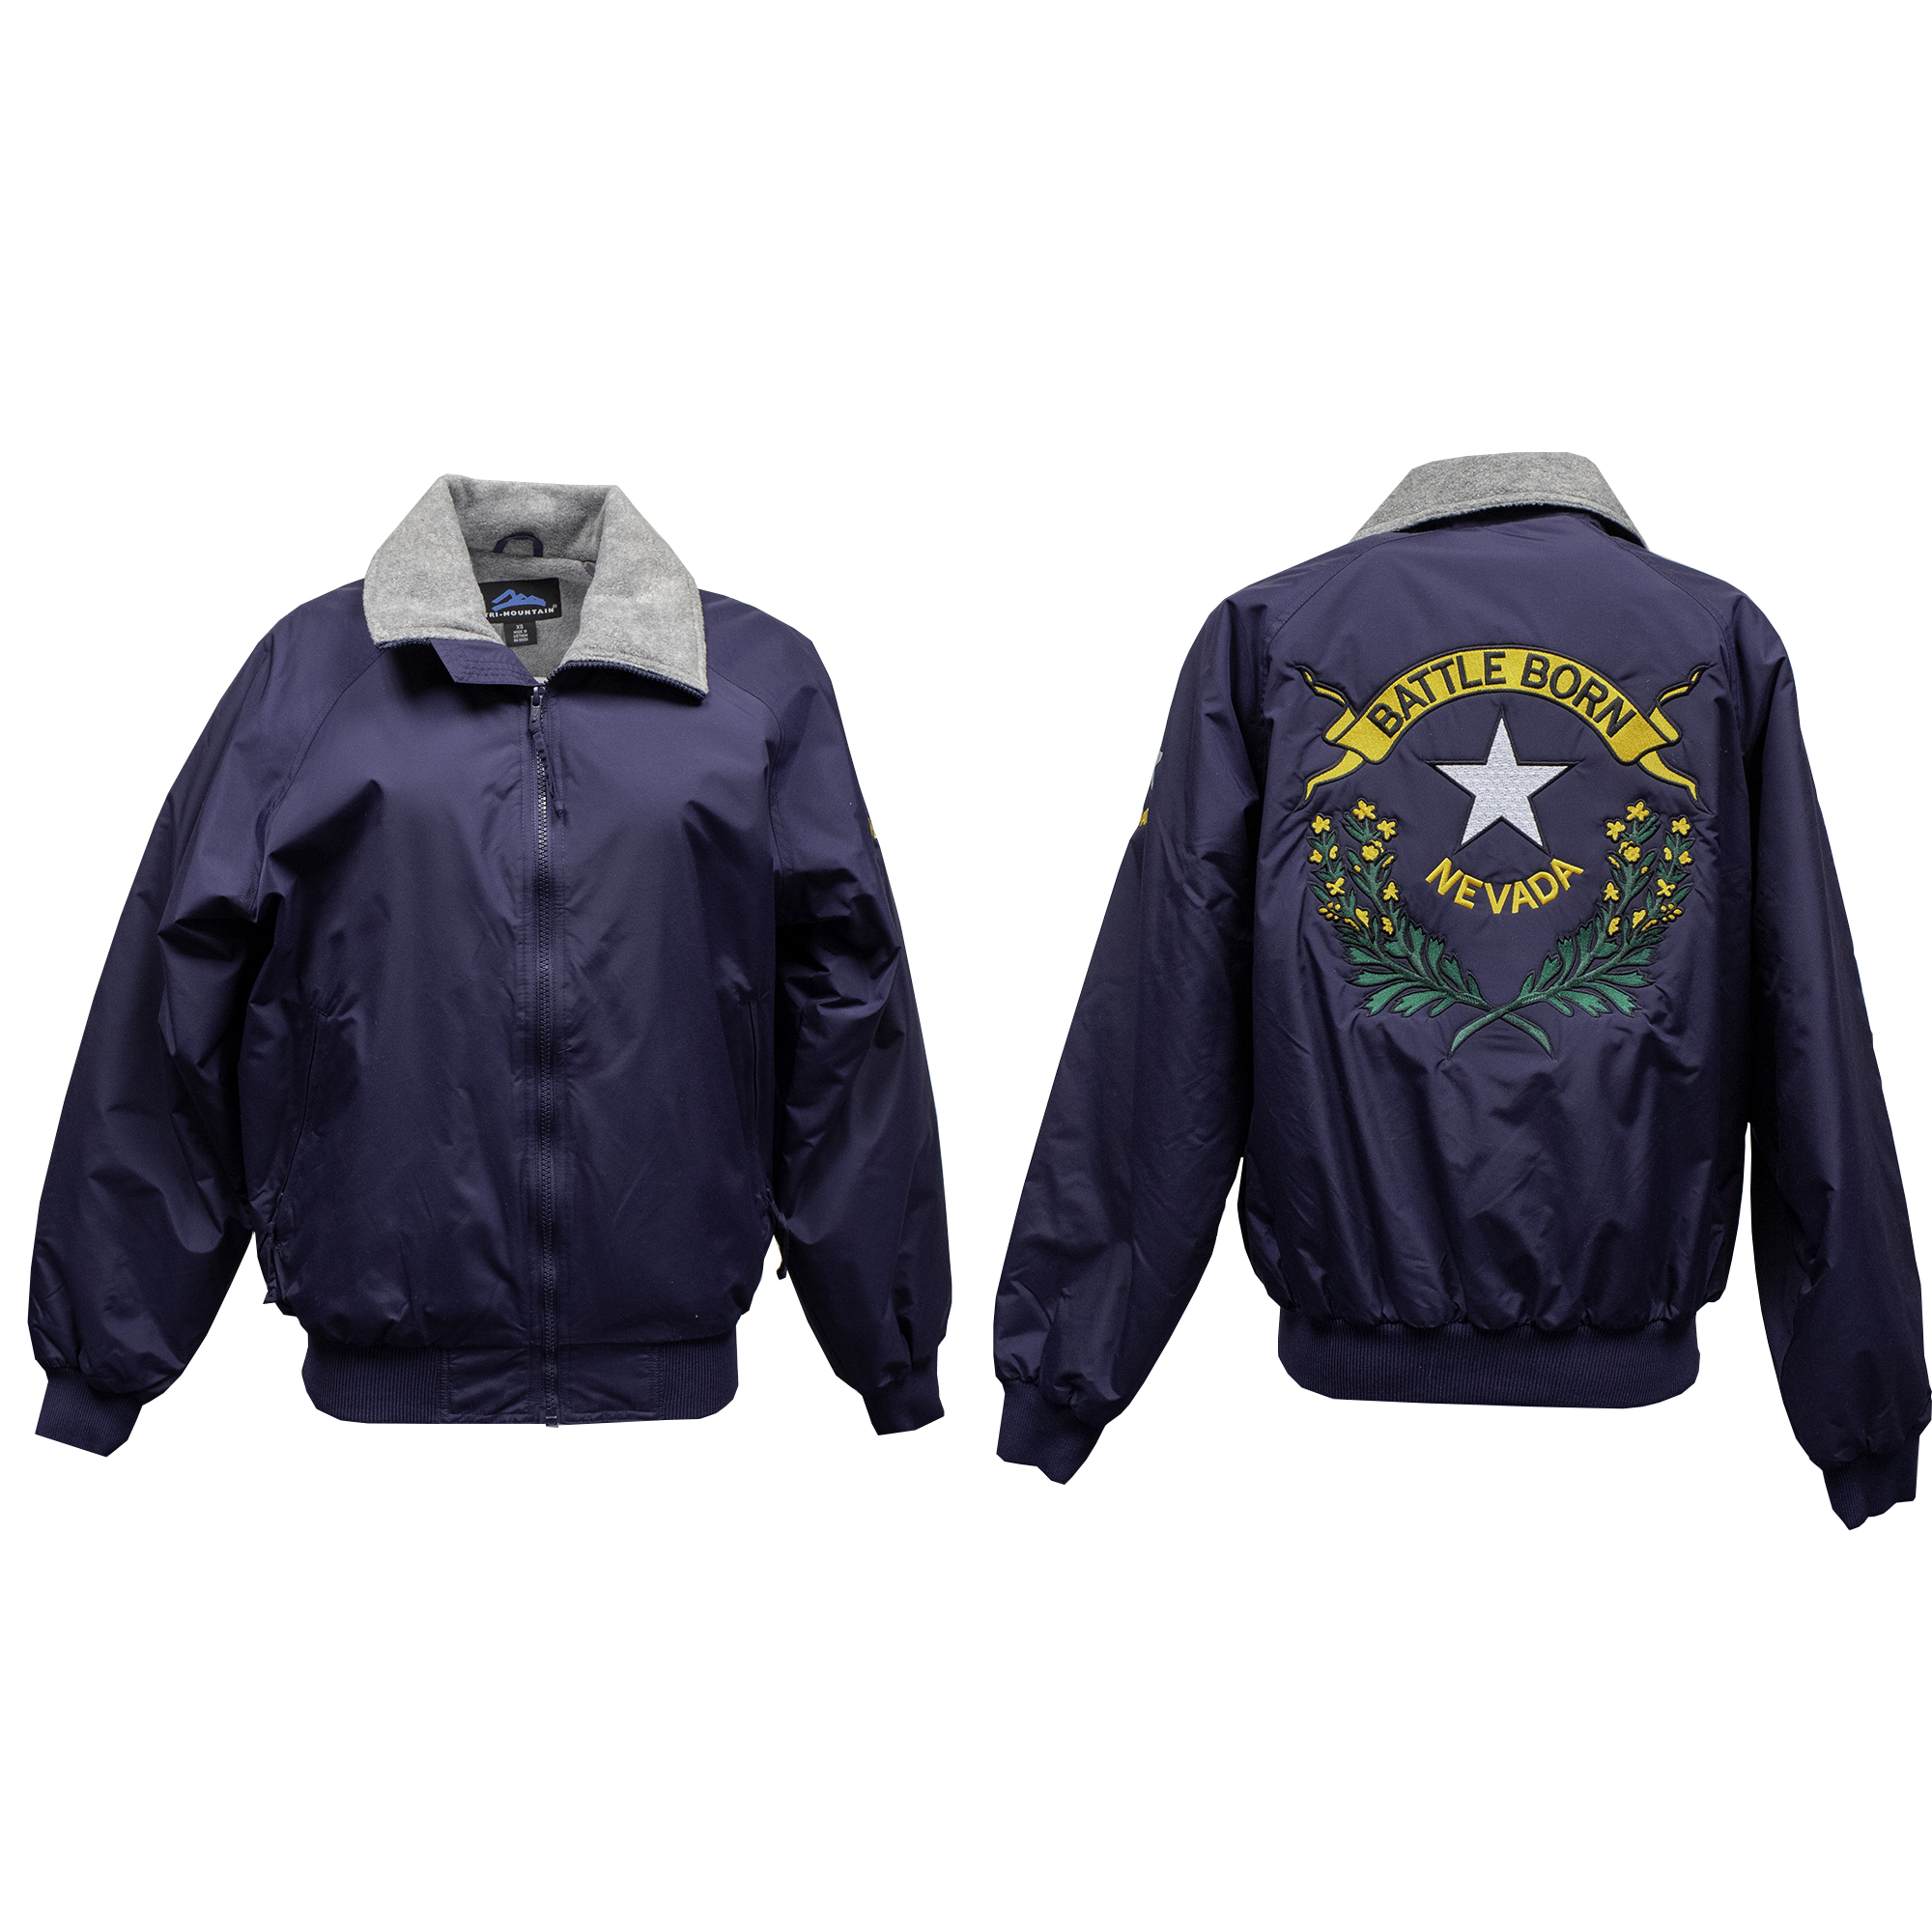 Blouson Nevada Navy Royalblau Agrar, Forst & Kommune Business & Industrie